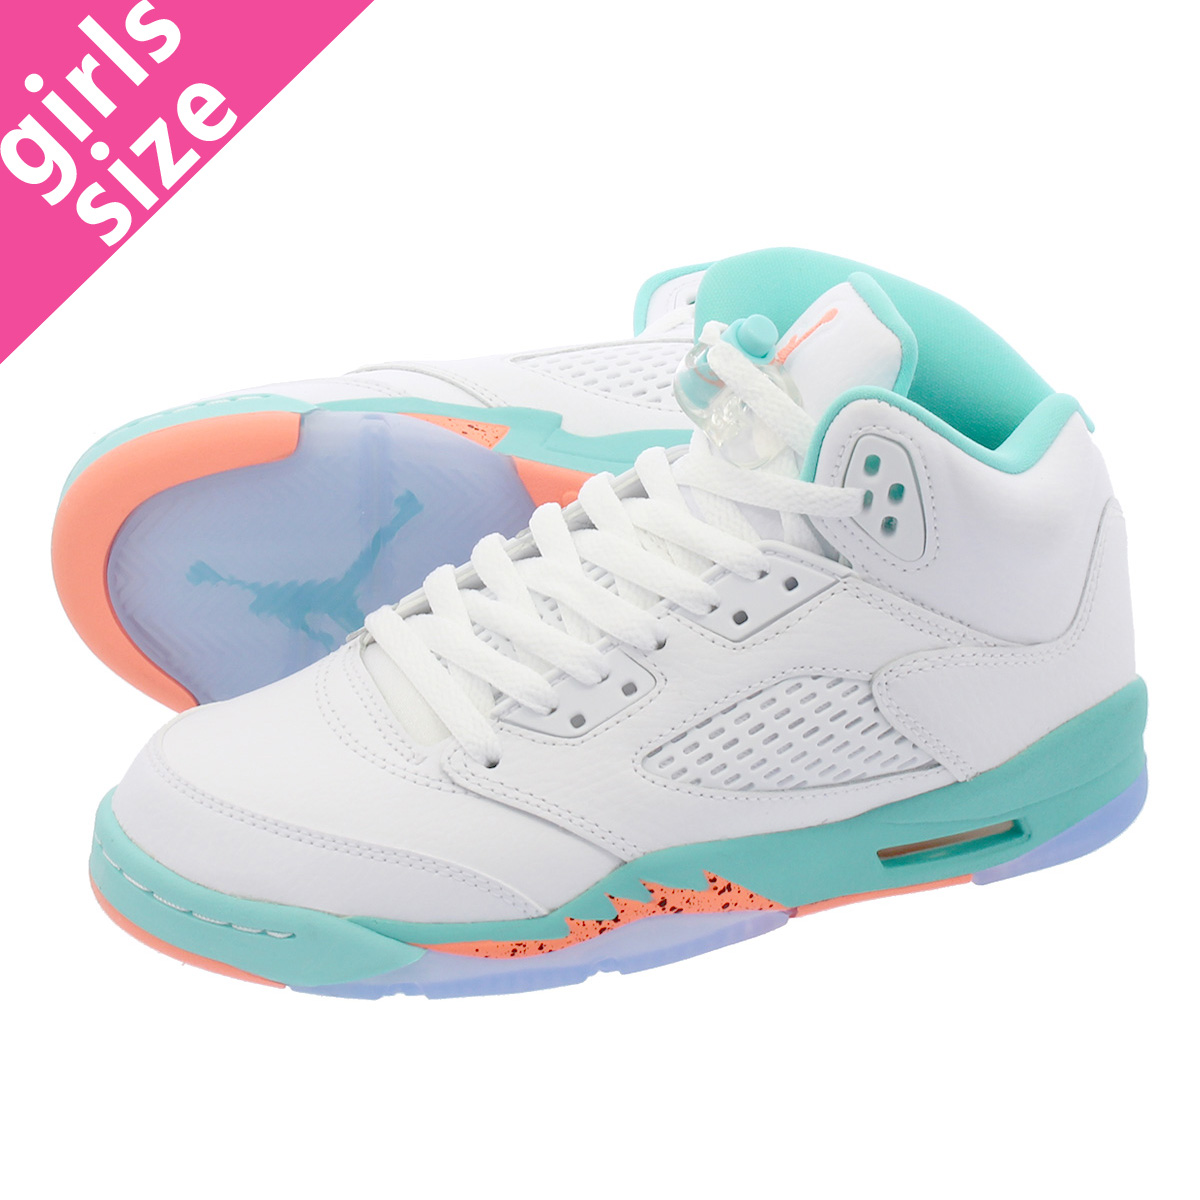 reputable site c194c 15ad5 ... coupon for nike air jordan 5 retro gg nike air jordan 5 nostalgic gg white  crimson